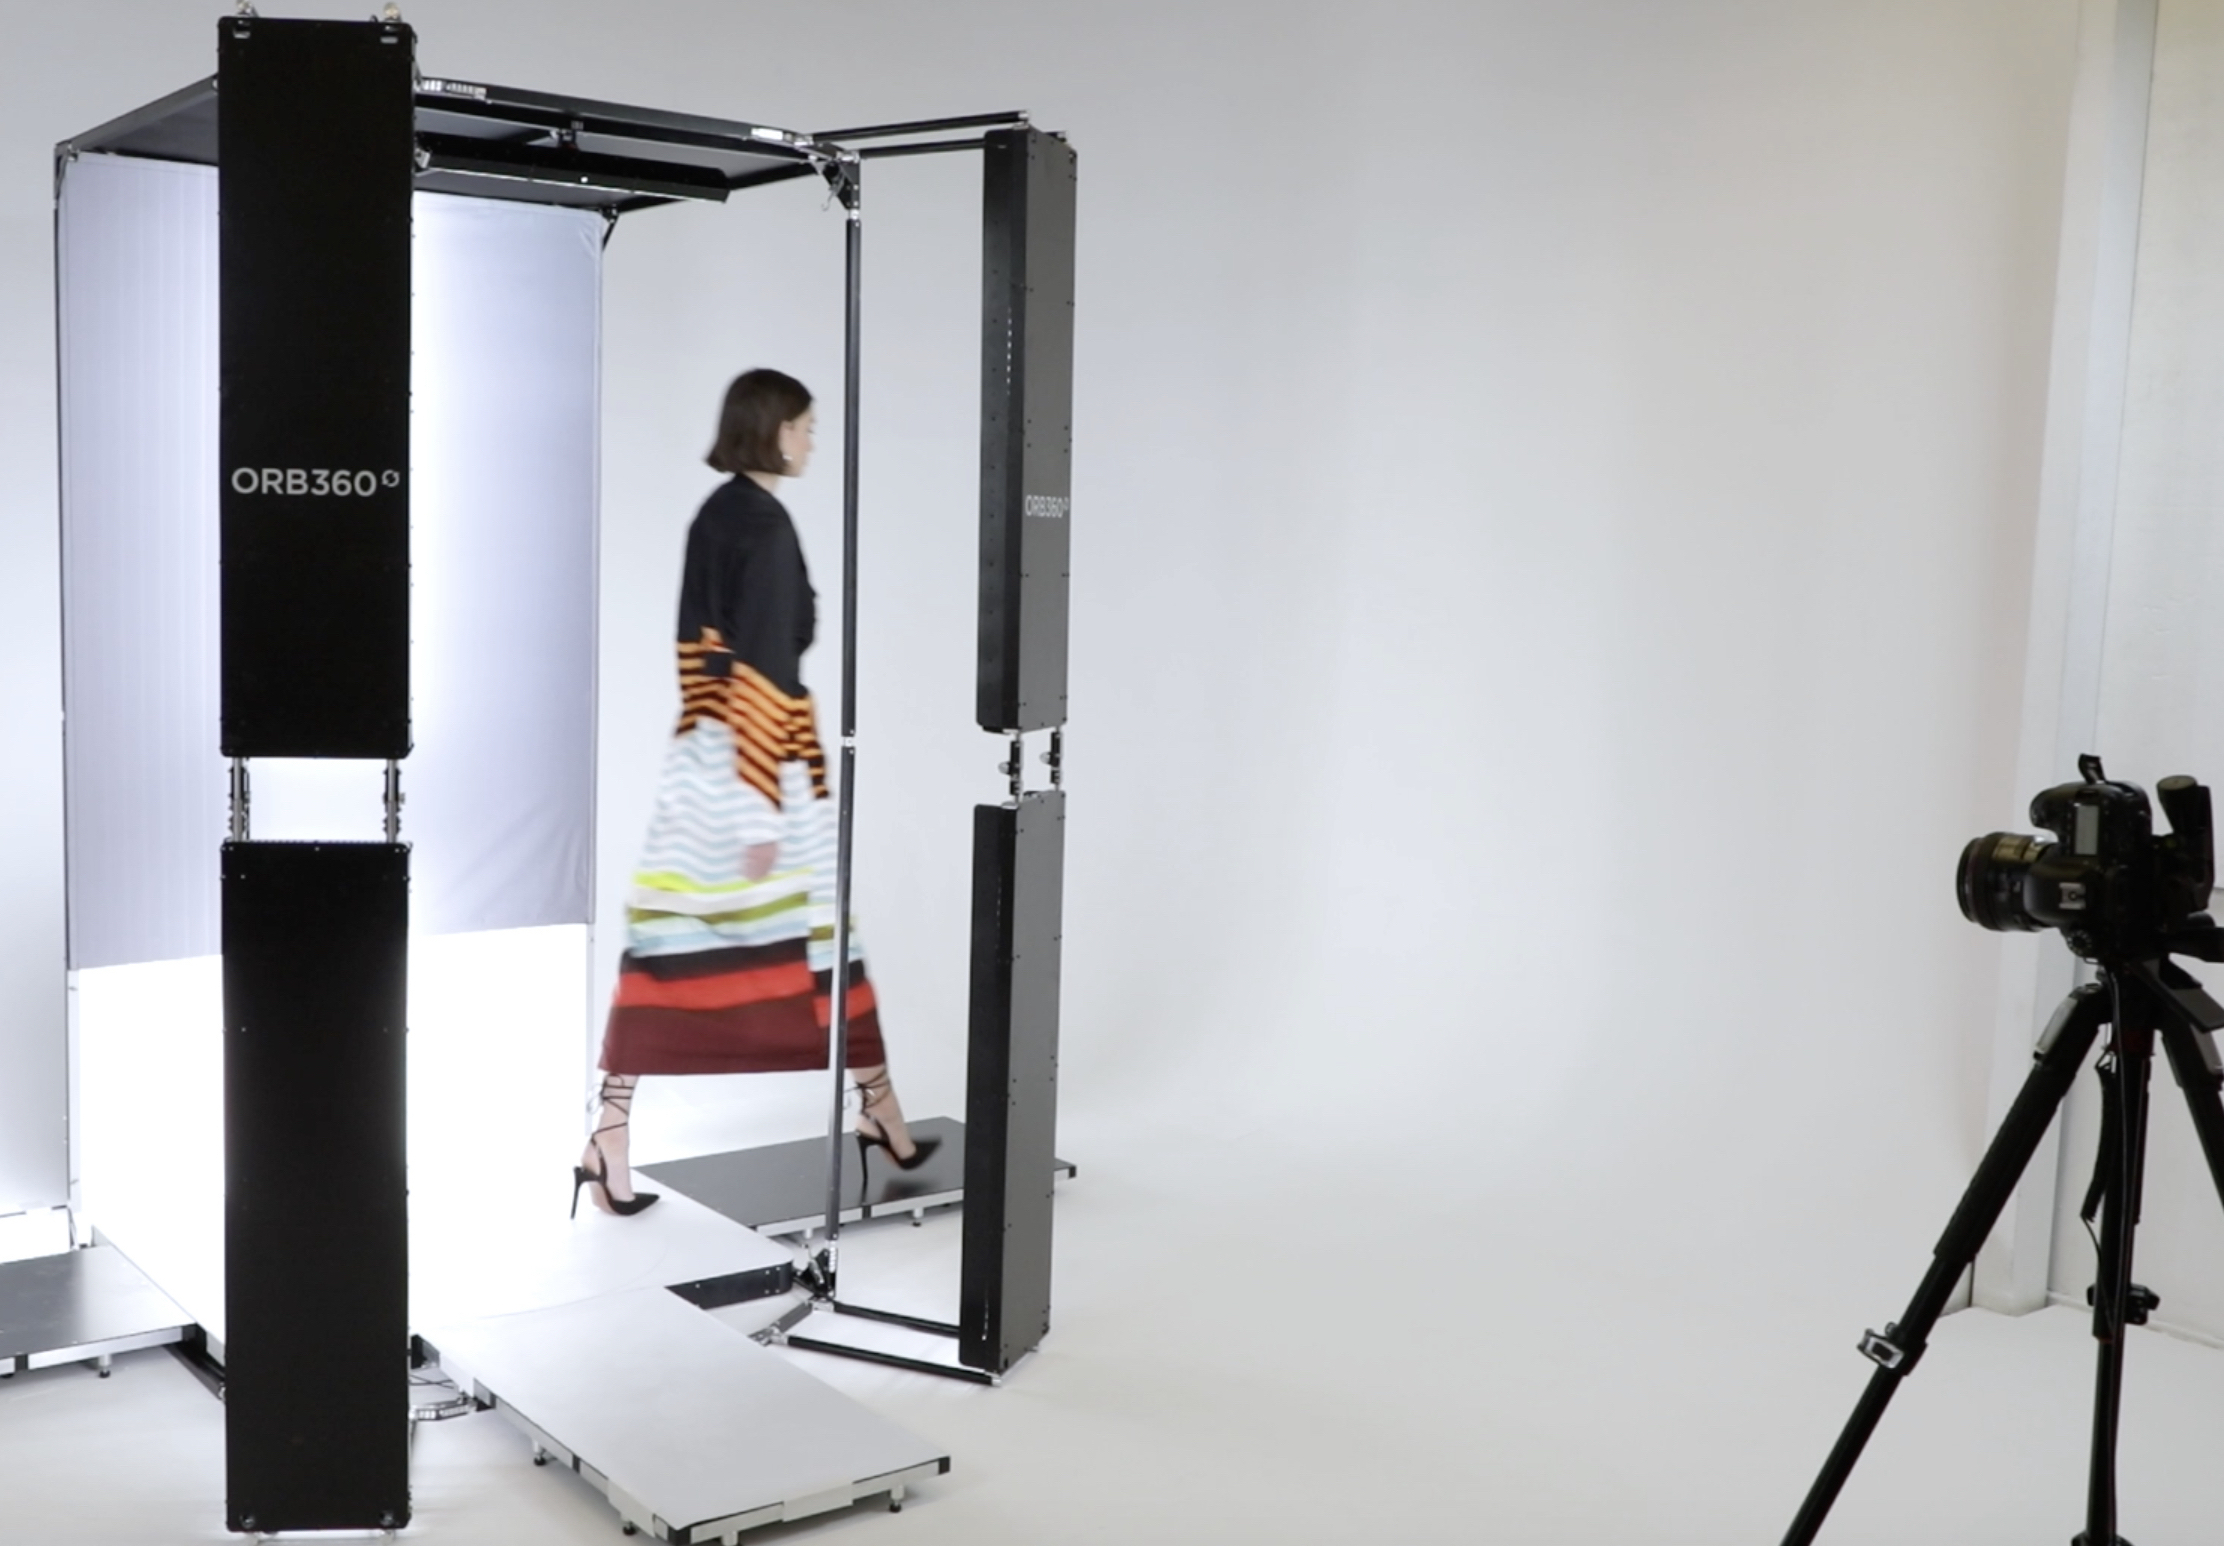 Ordre's new Orb360º Video technology, which will be used by designers in their virtual showrooms at the upcoming Afterpay Australian Fashion Week in Sydney.